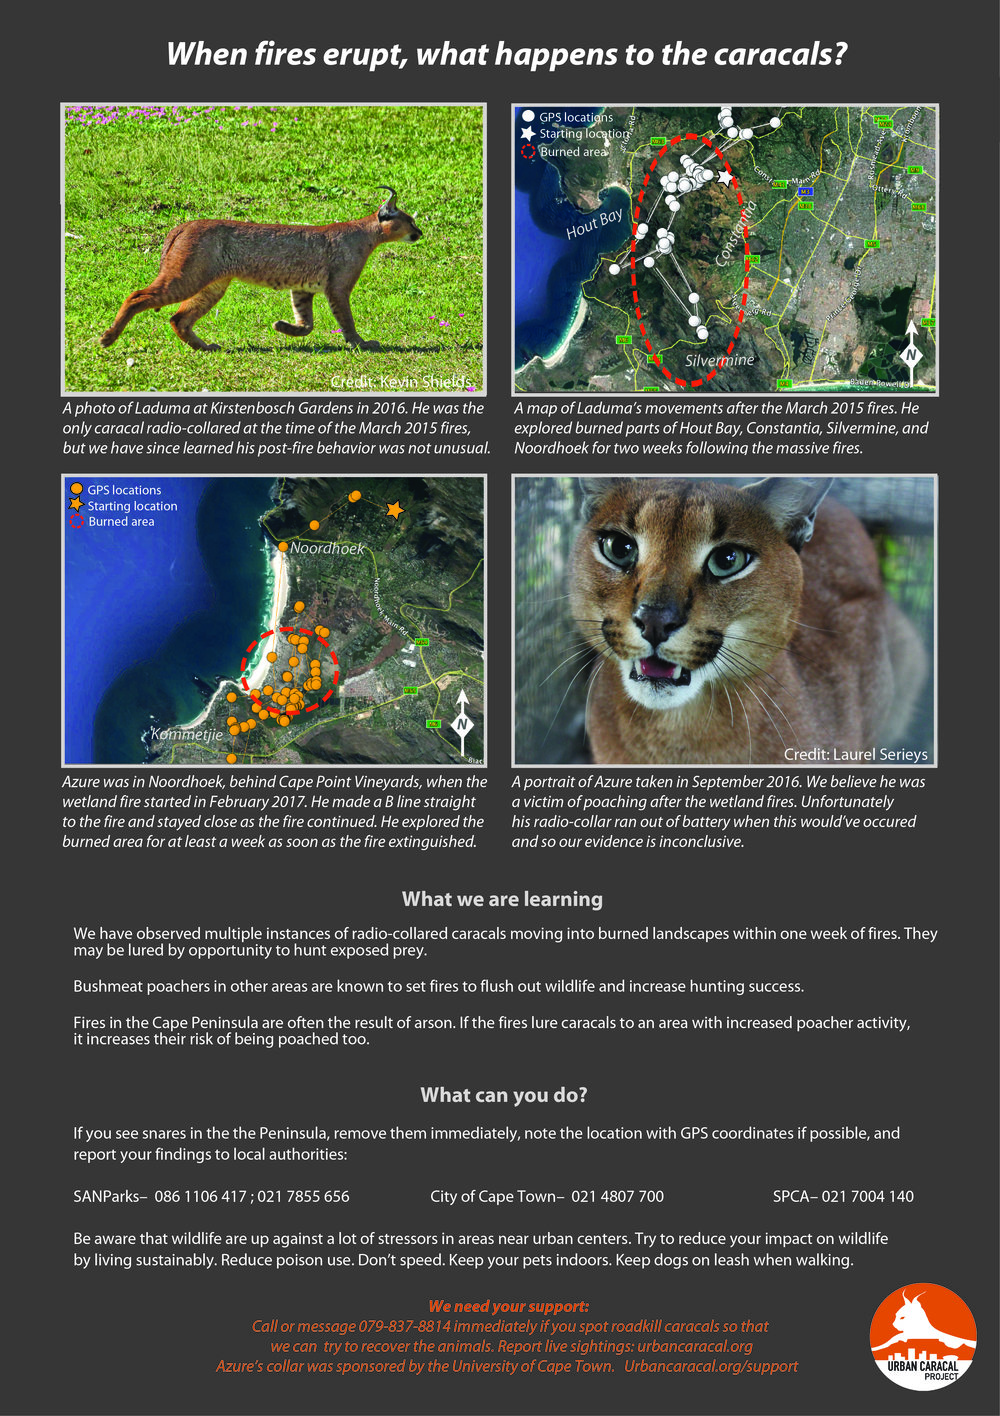 When fires erupt, what happens to the caracals? - September 19, 2017